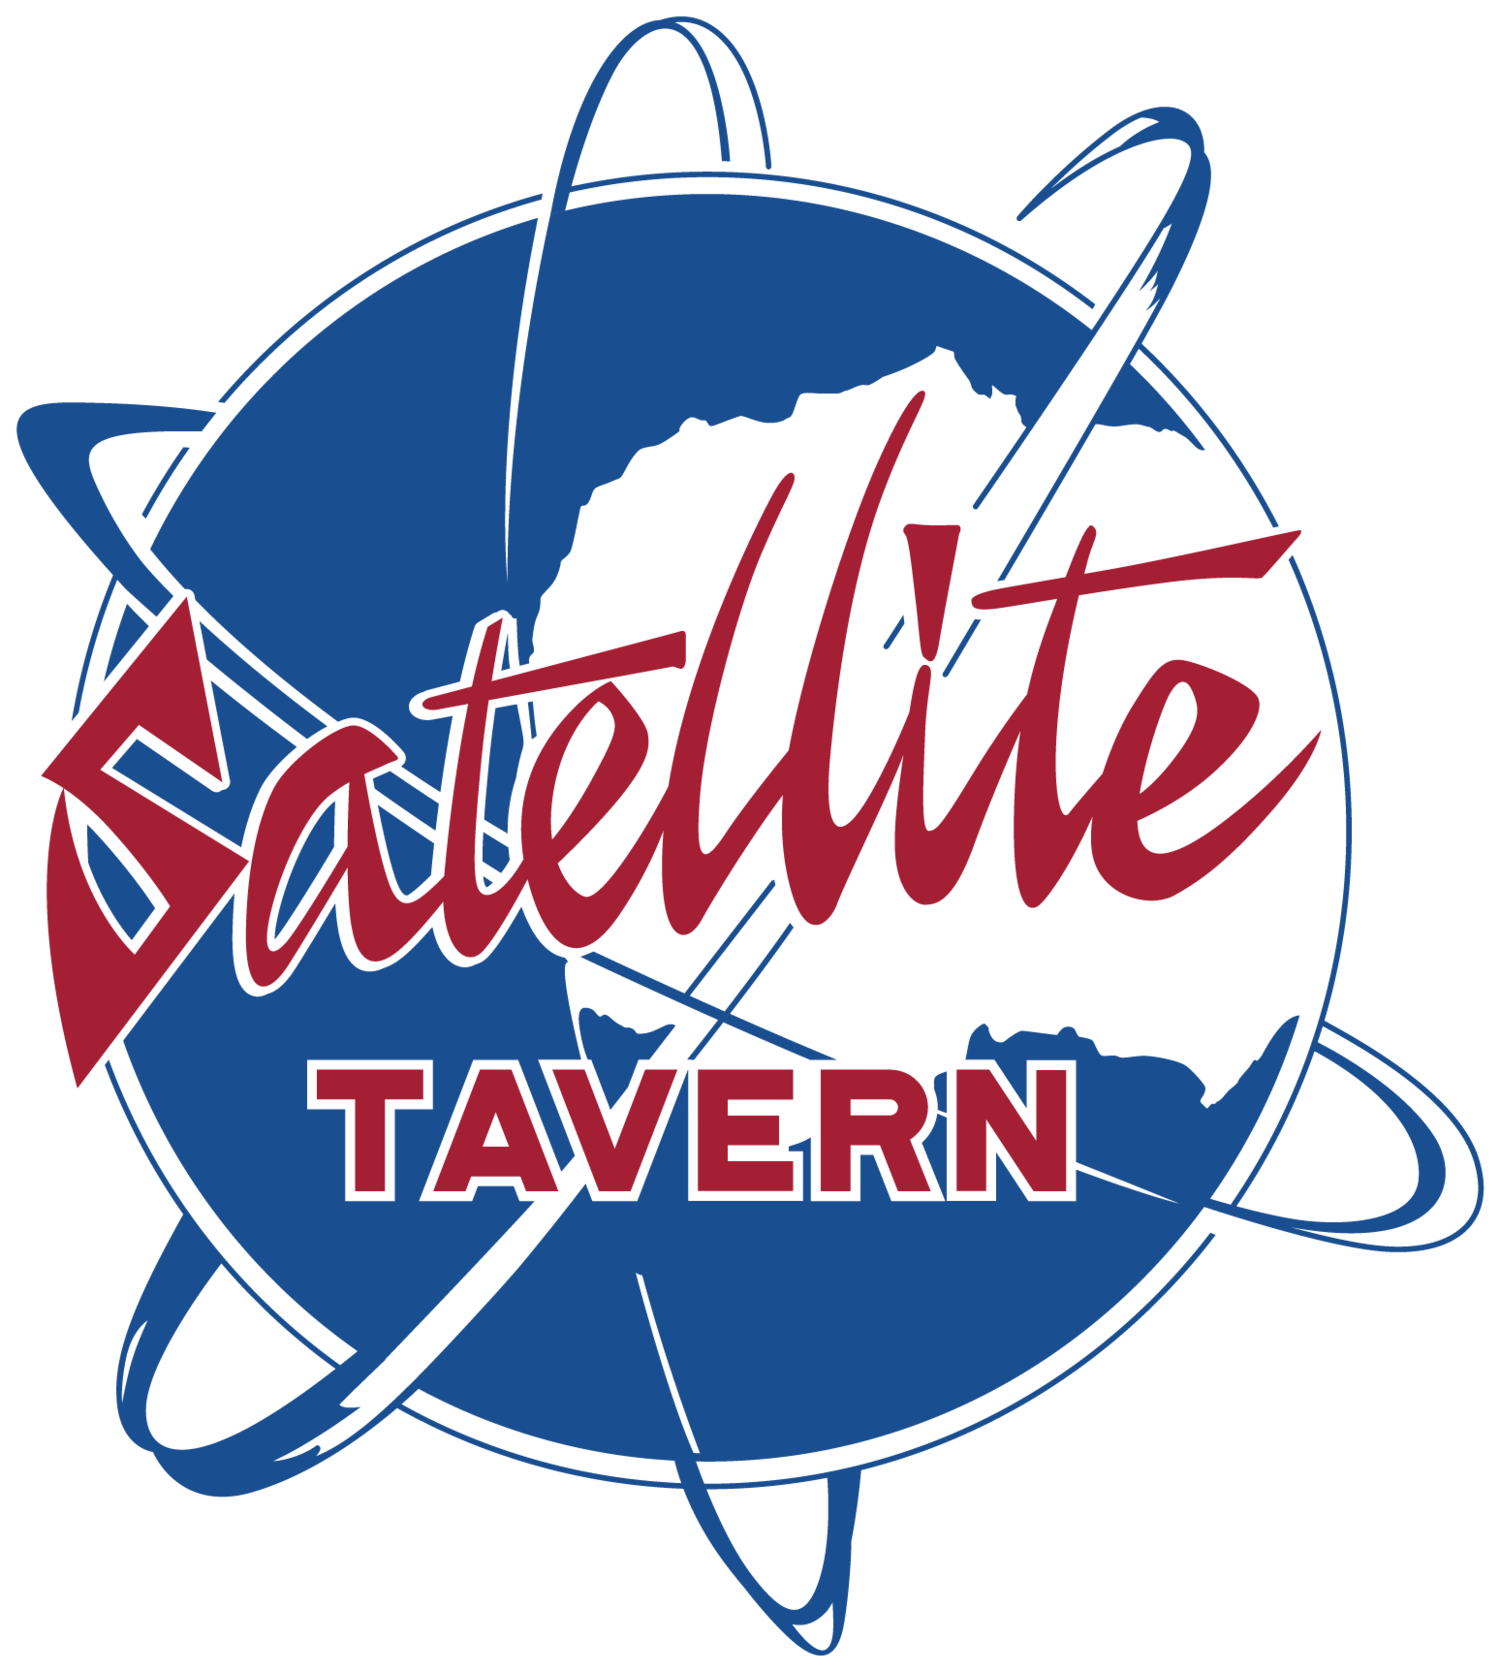 Satellite Tavern